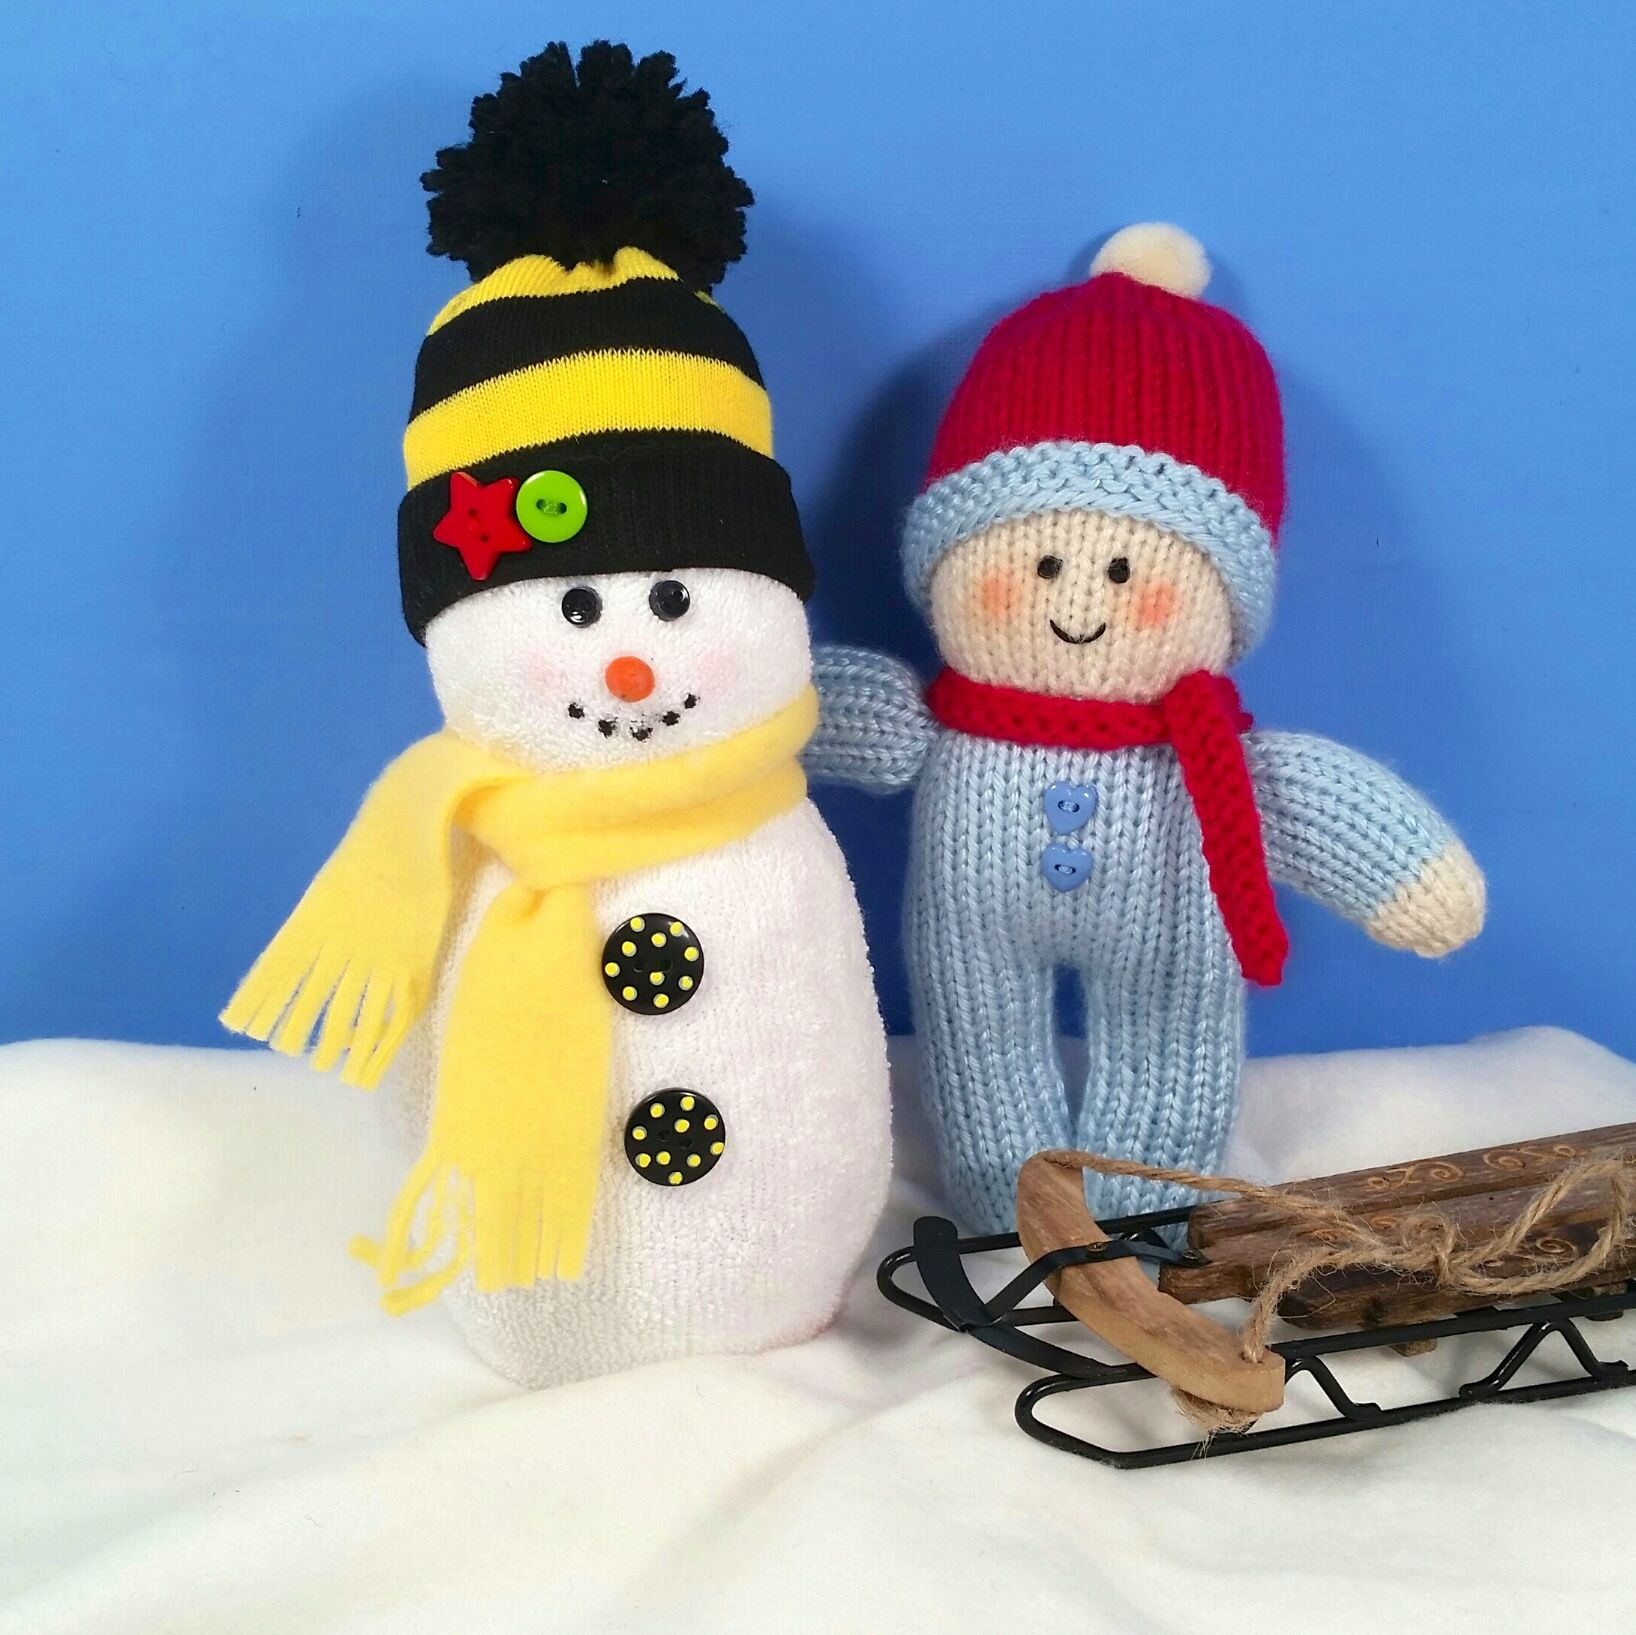 Here is another snowman with a striped hat for part of a family of snowmen. The little knitted boy building the snowman is from a free pattern (Rainbow Babies) by Jean Greenhowe and available online as a pdf.